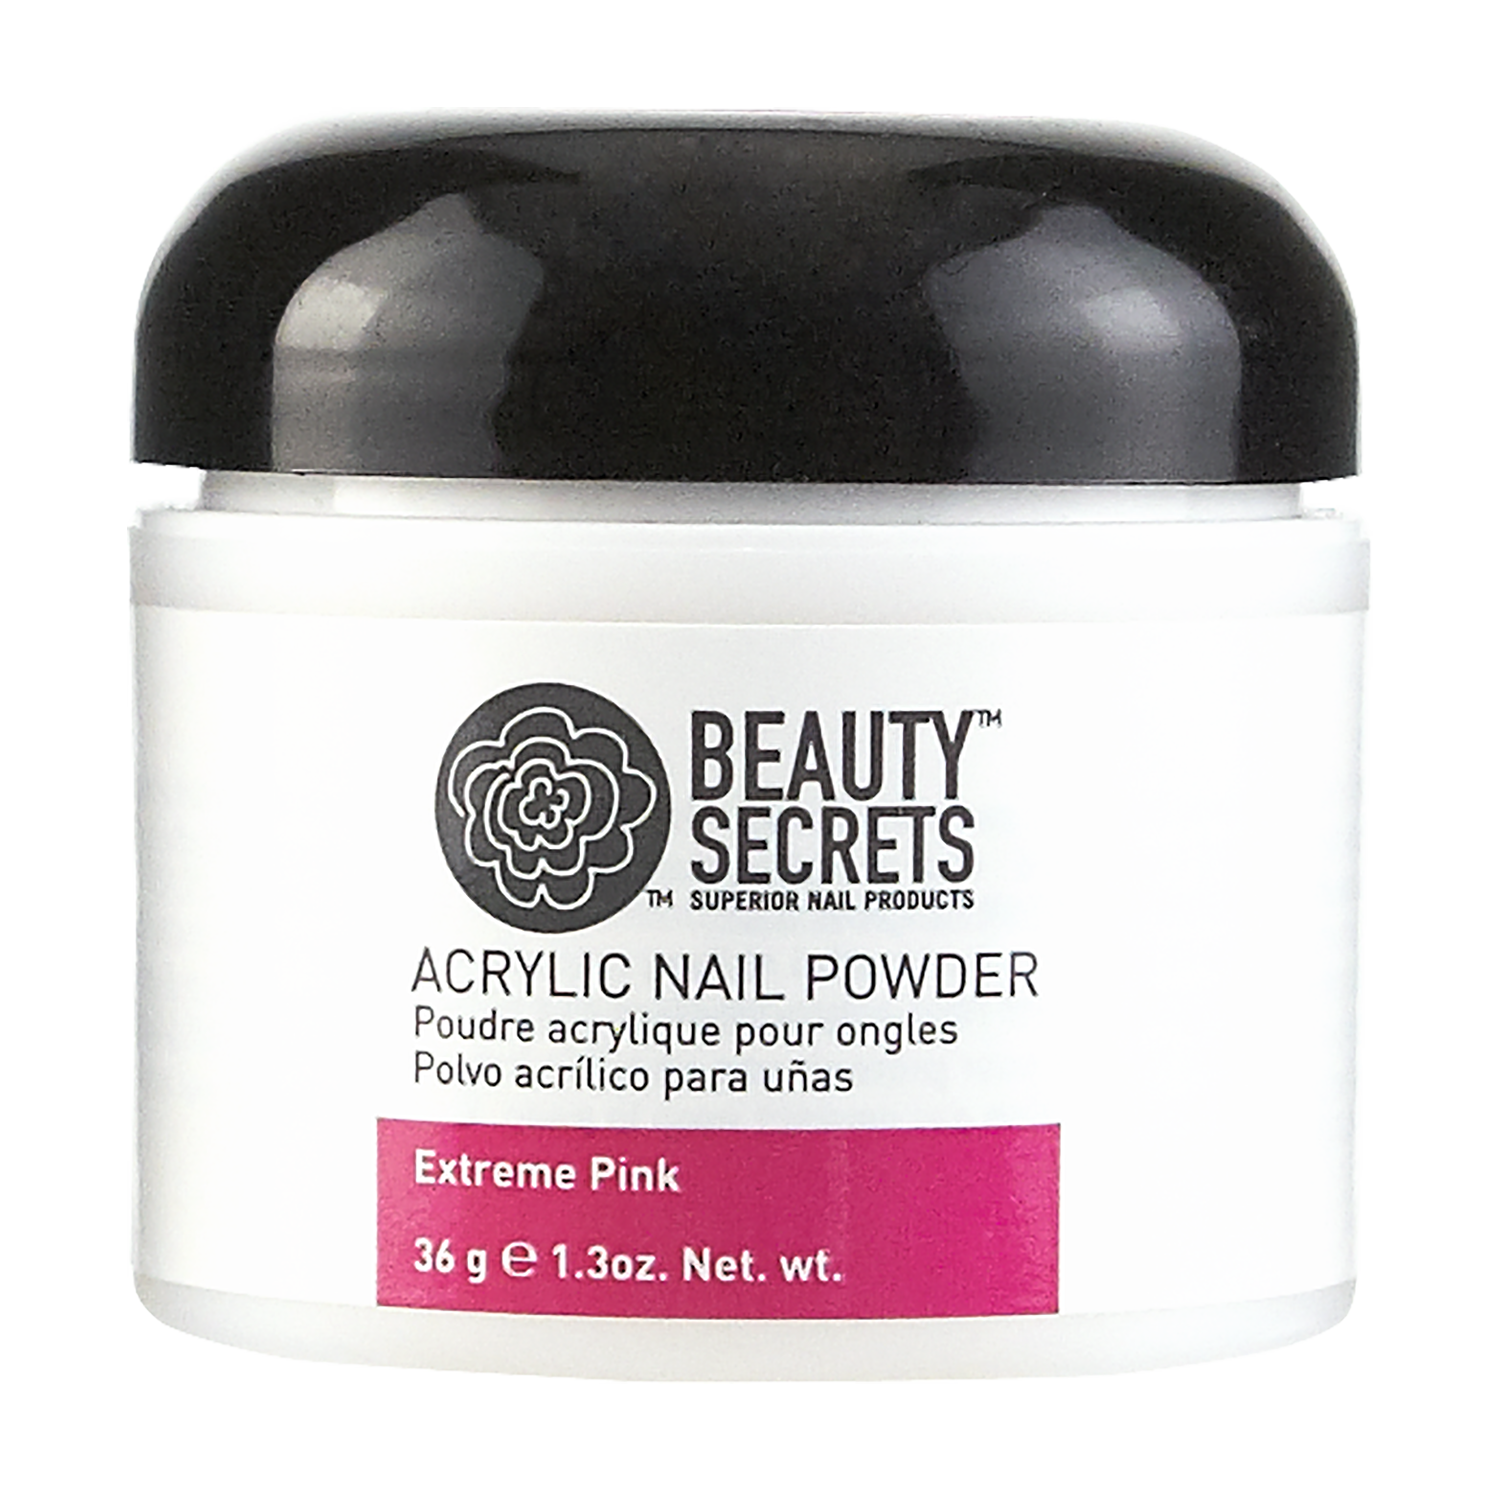 Beauty Secrets Extreme Pink Acrylic Nail Powder